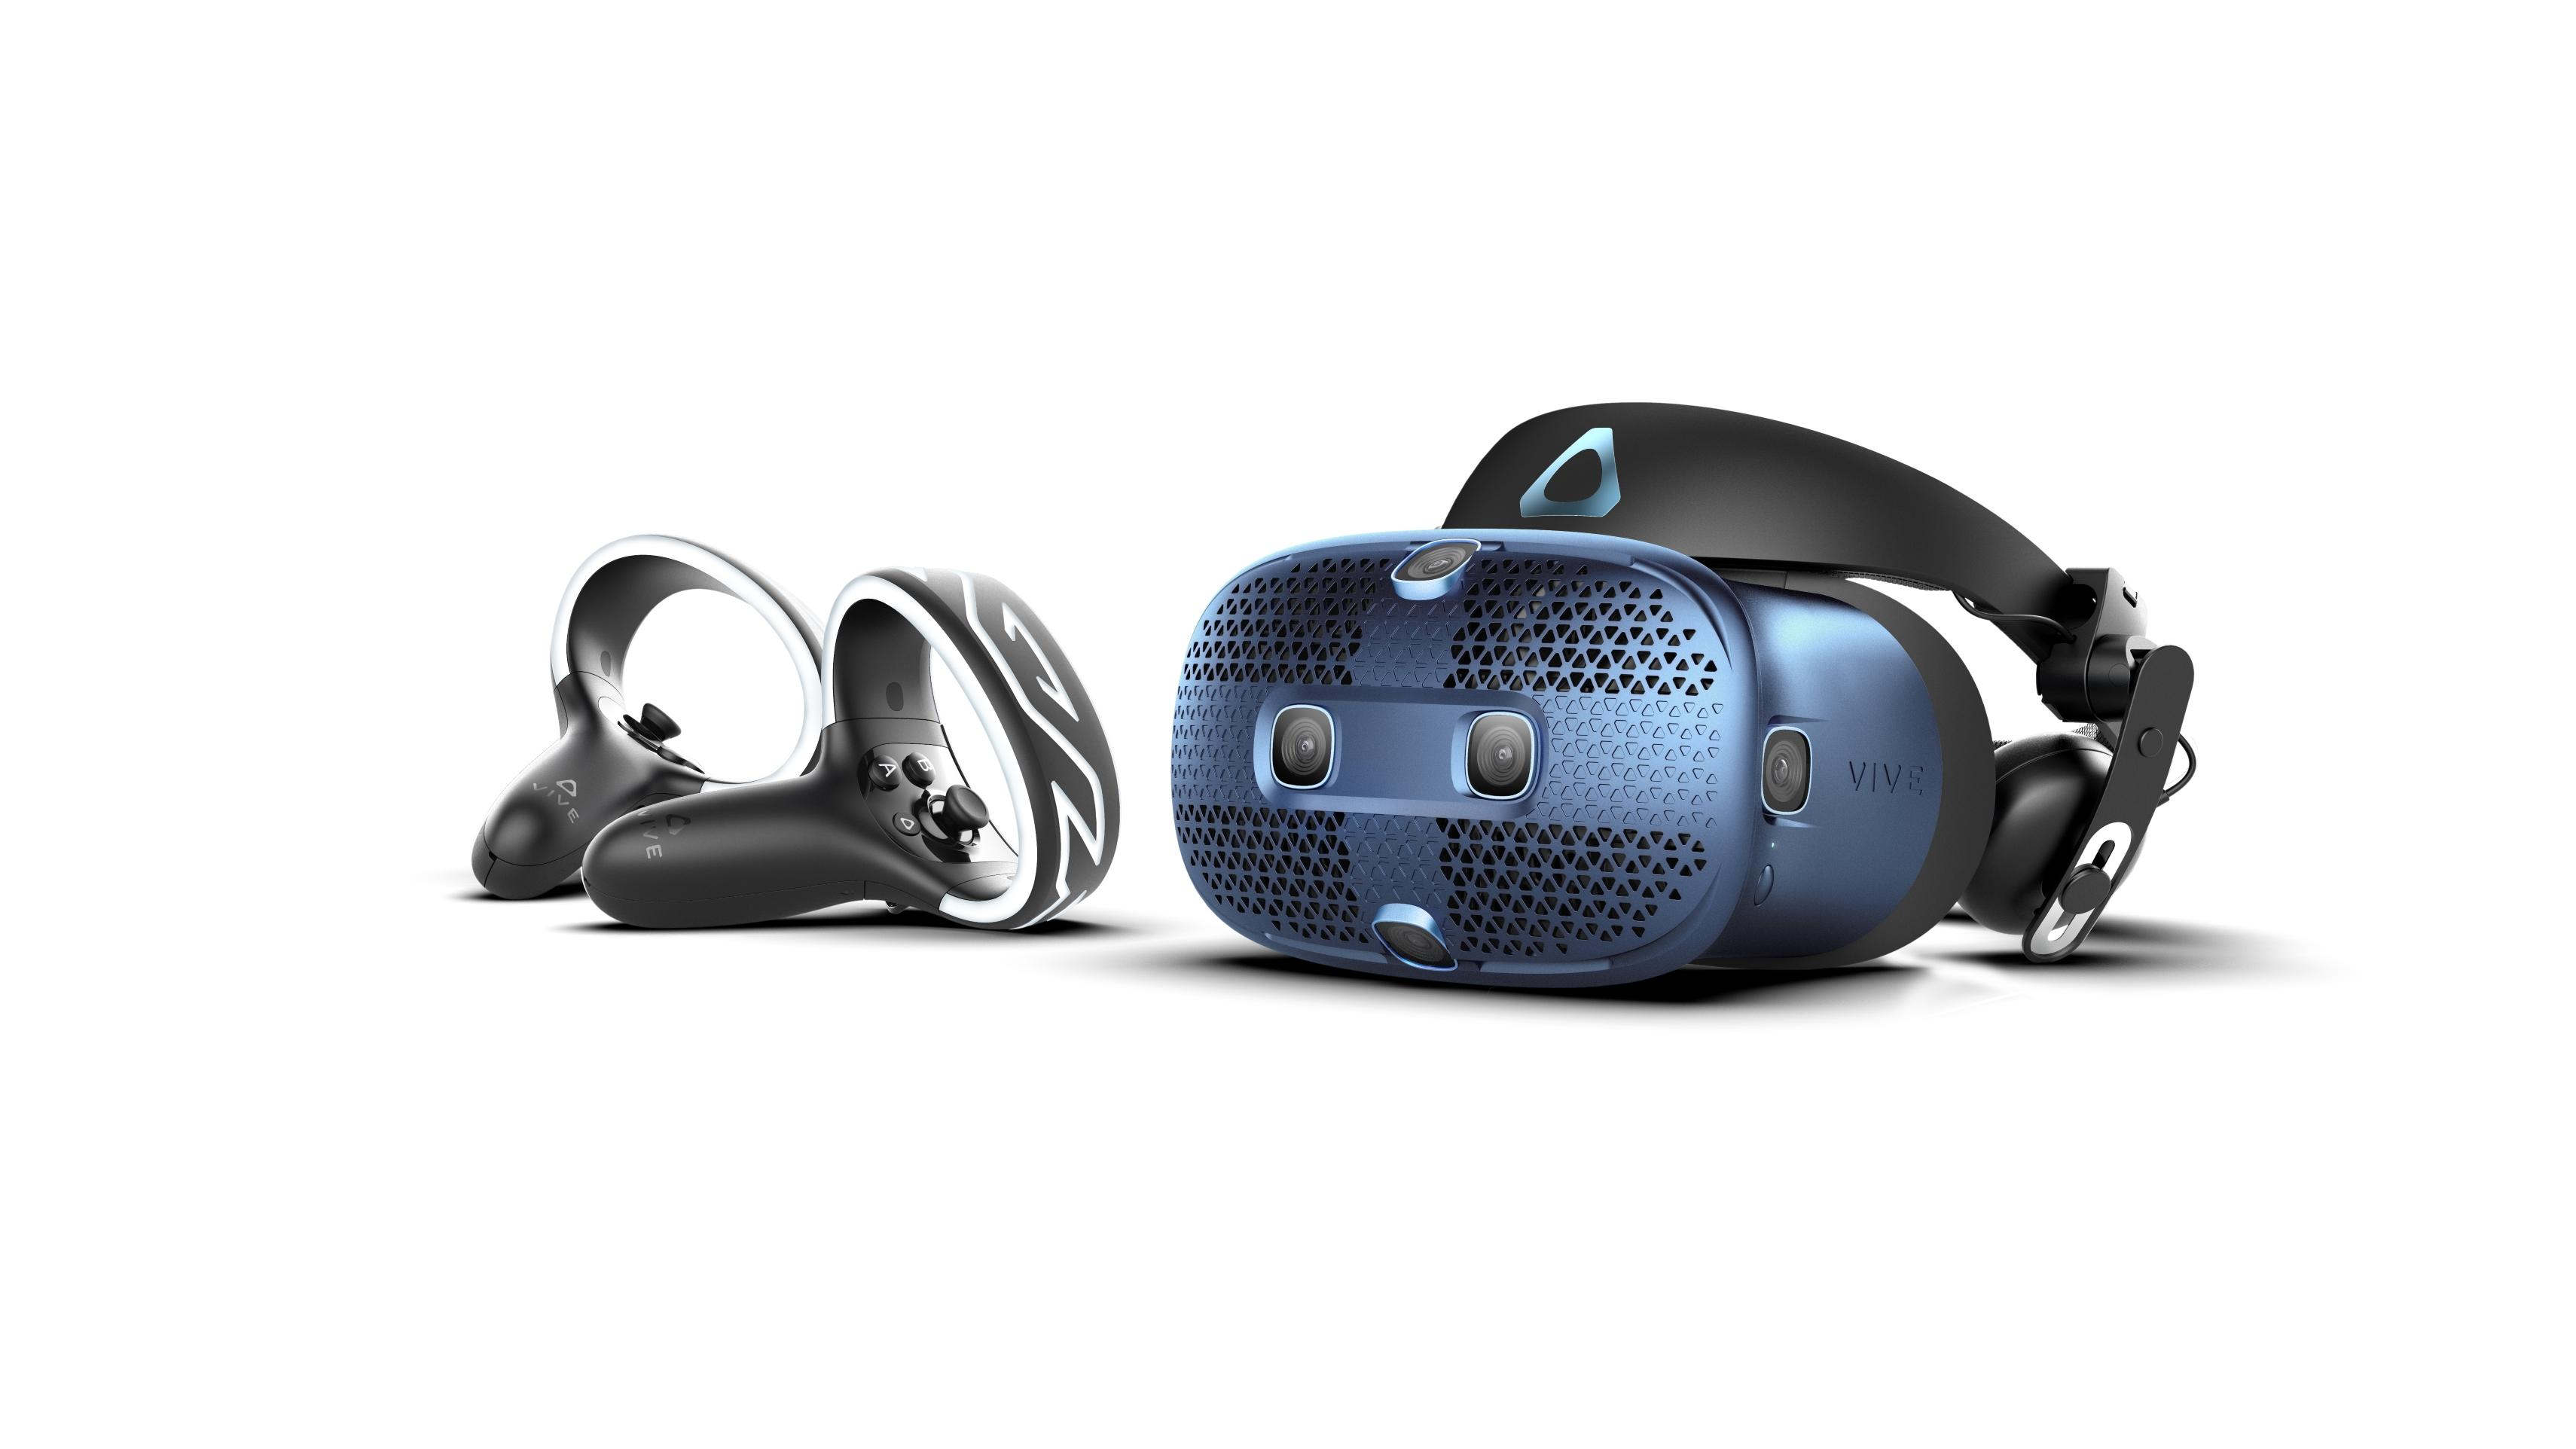 Next-generation modular VR headset HTC Vive Cosmos coming